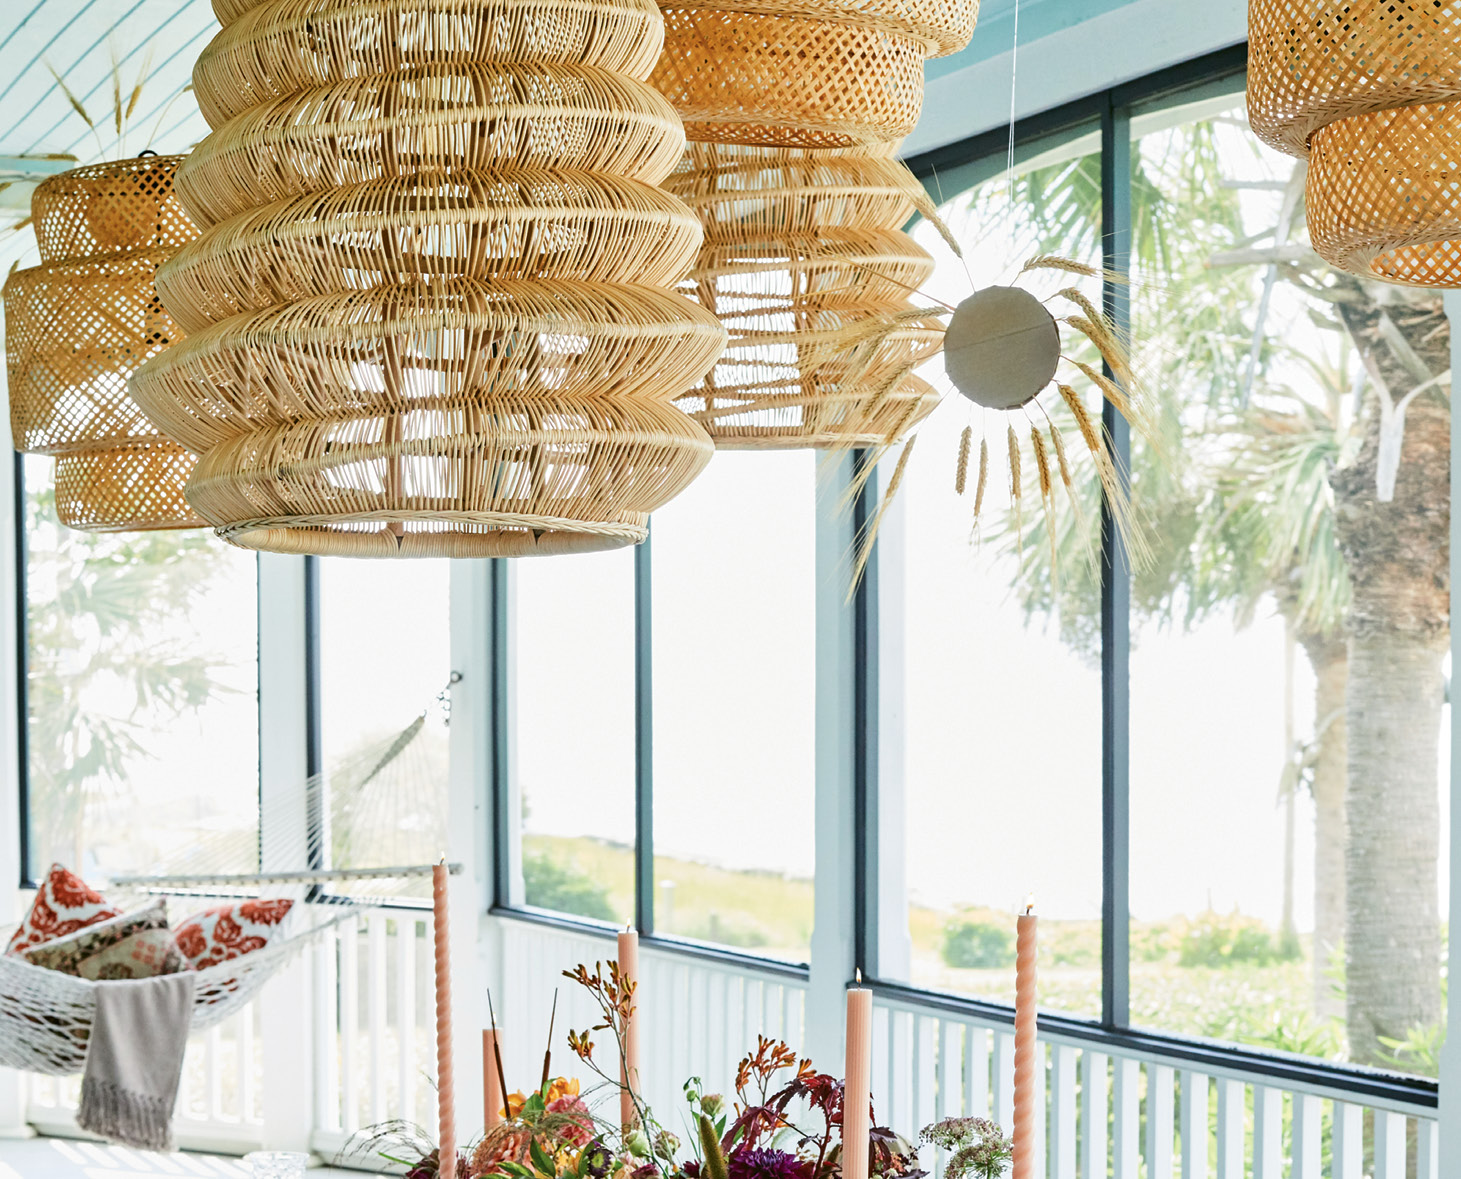 A grouping of rattan shades in different sizes and shapes delivers interest and intimacy.